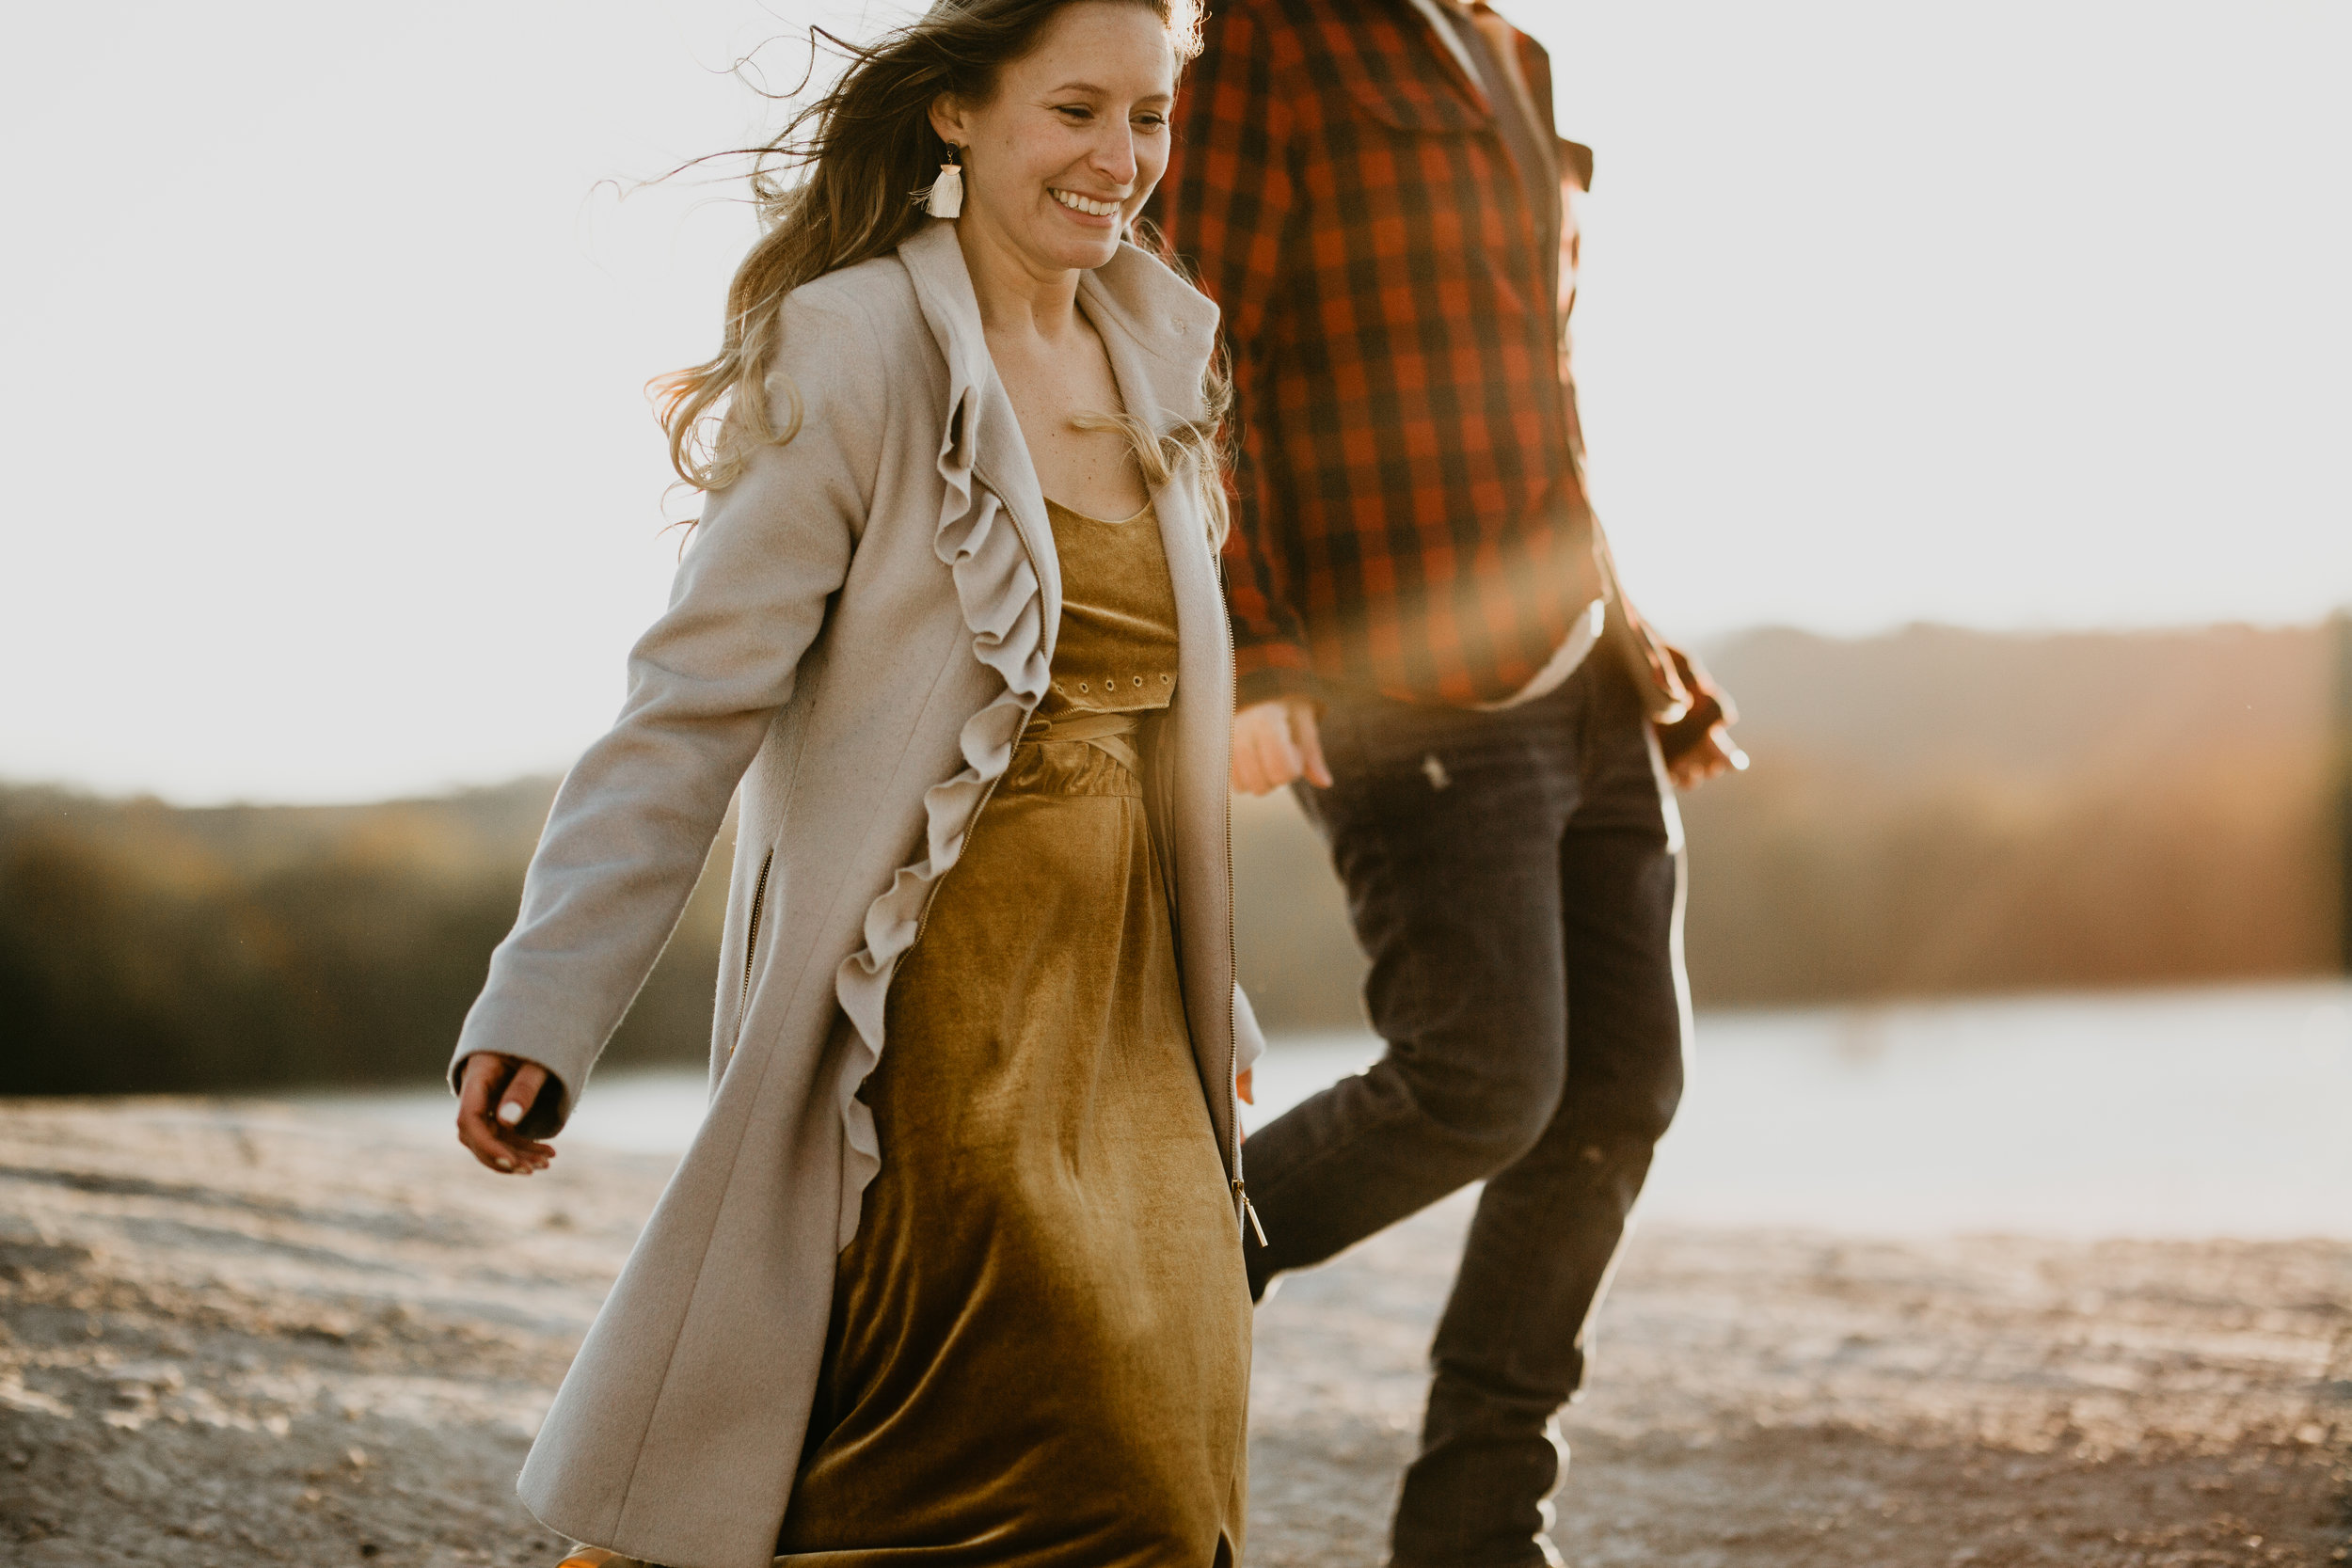 nicole-daacke-photography-white-cliffs-of-conoy-in-lancaster-pa-pennsylvania-adventure-session-adventure-elopement-photographer-engagement session-in-lancaster-pa-photographer-golden-sunset-winter-solstice-wedding-riverside-elopement-4986.jpg